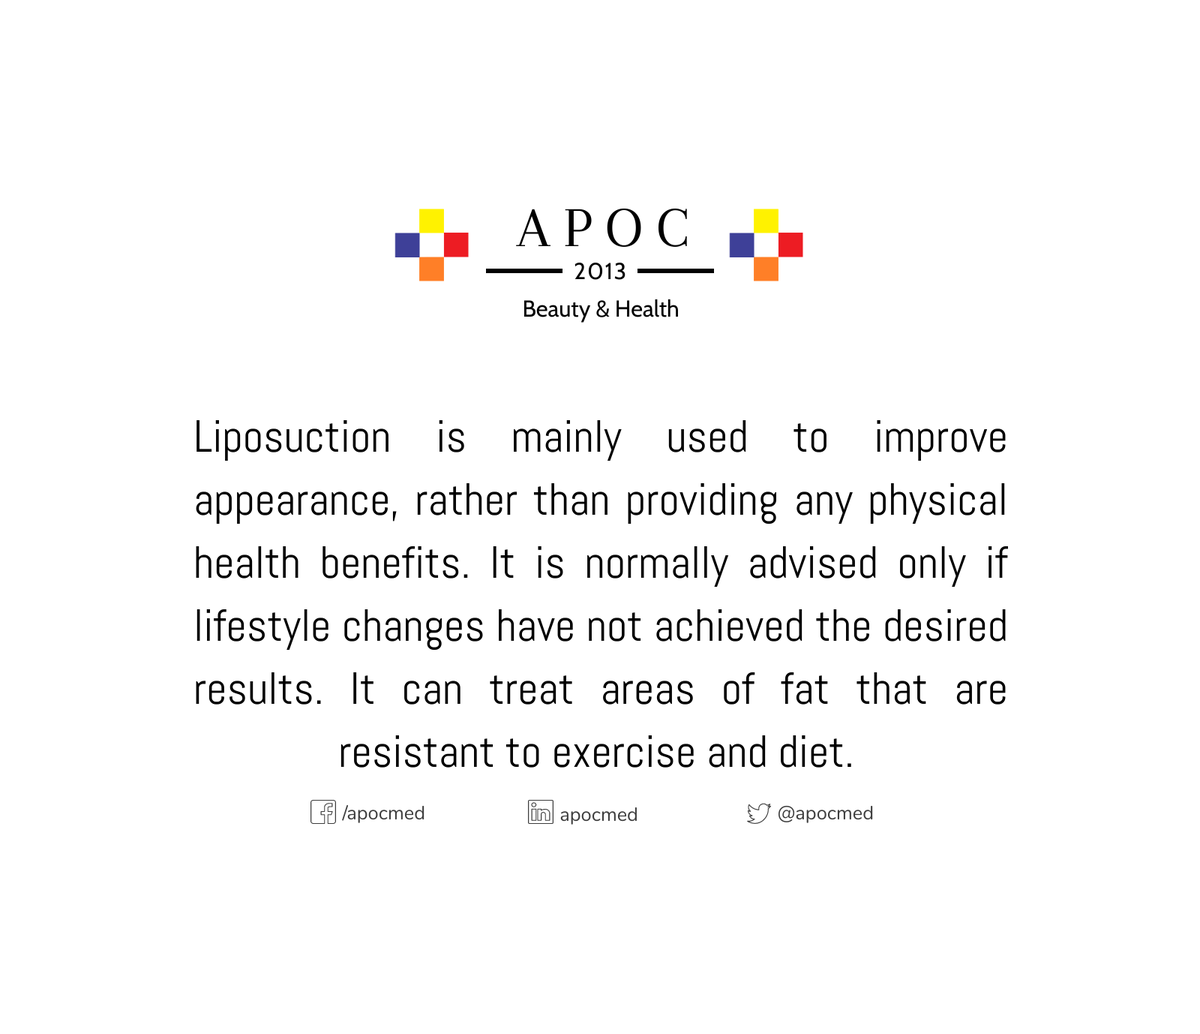 Liposuction  Call us and schedule your consultation! 😉  ☎️ 7149484281 ✉️ consults@apocmed.com  Any doubts about this procedure? Write us!  -Team APOC- #BodyCare #Health #California #StayAtHome #men #women #OrangeCounty #wednesdaymorning #WednesdayMotivation #Summer2020 https://t.co/lk8FAOQk9b